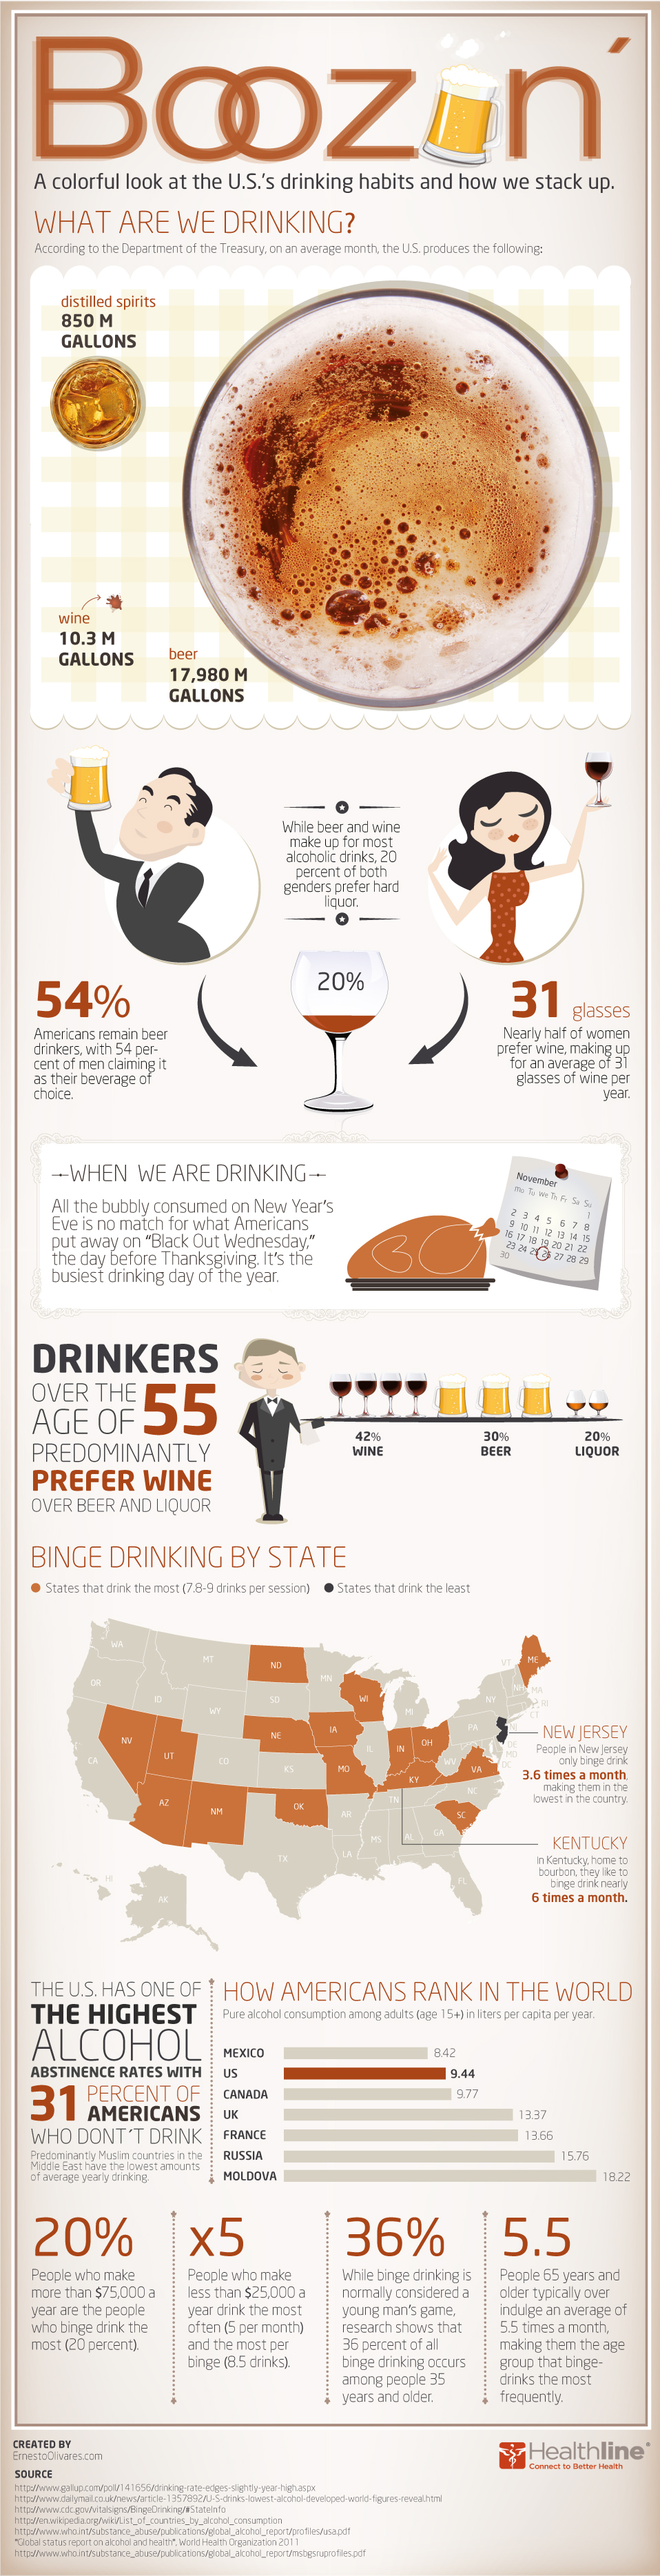 Facts about Drinking Habits